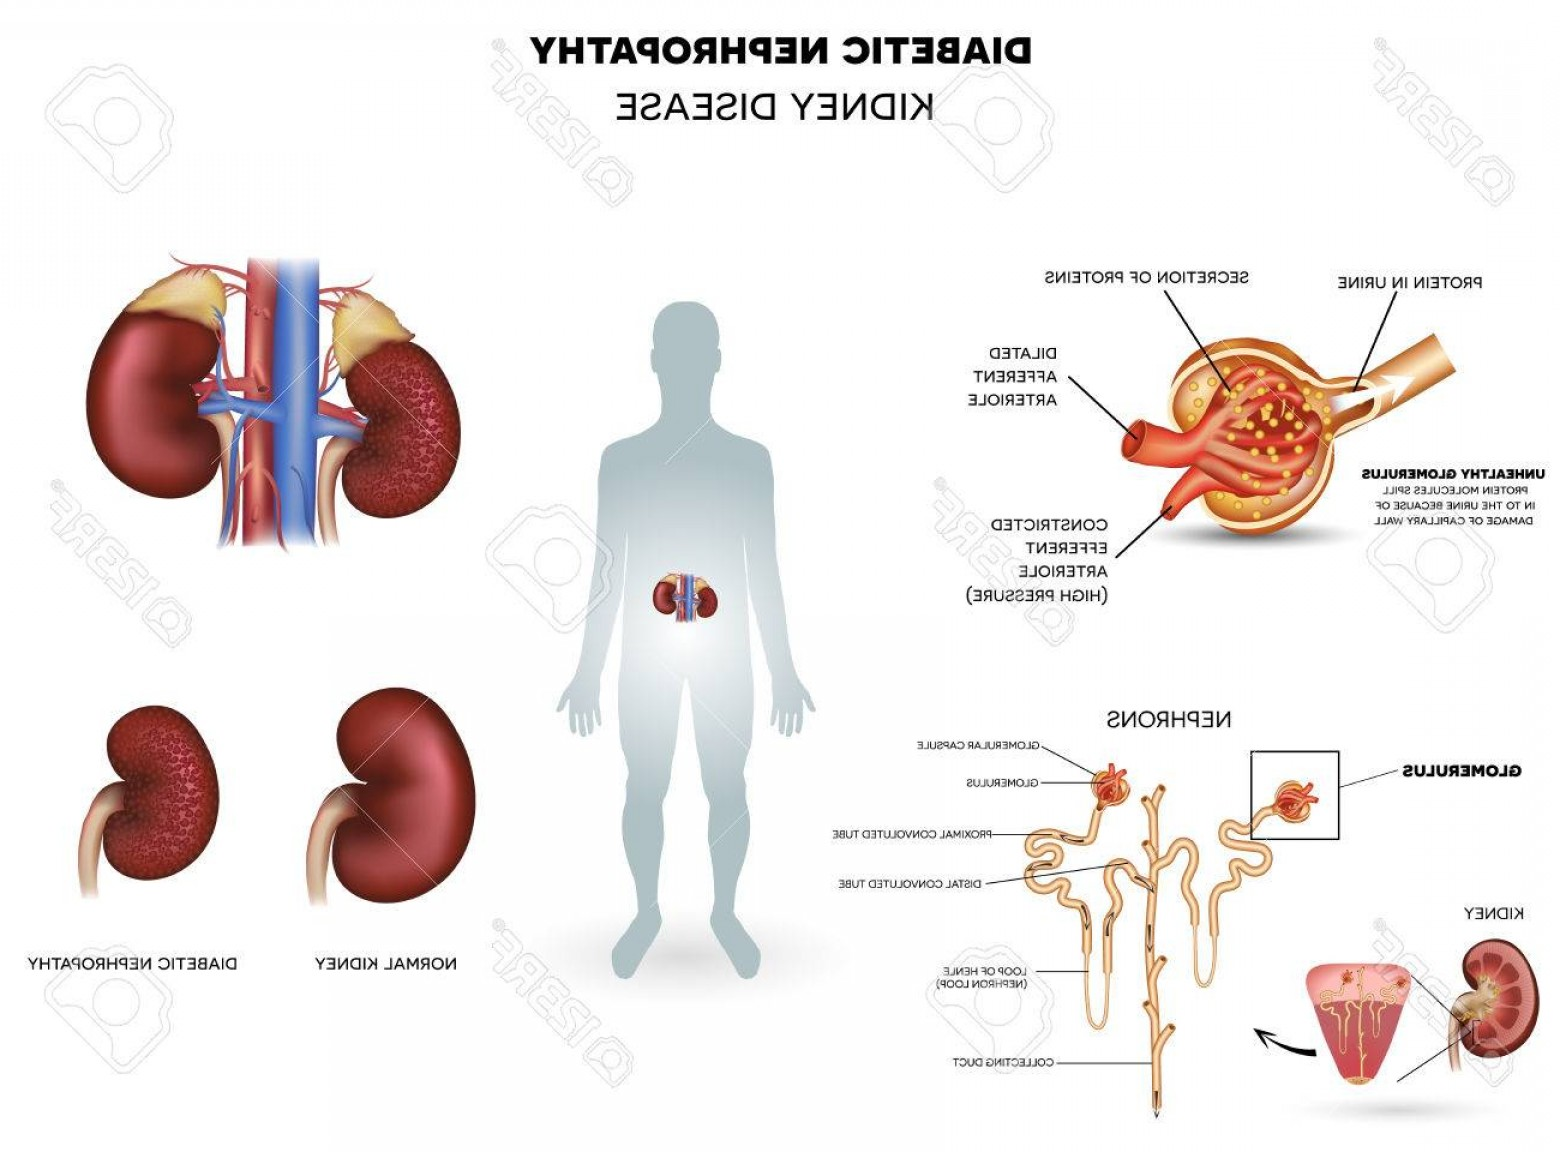 Vectors Diseases Caused By: Photostock Vector Diabetic Nephropathy Kidney Disease Caused By Diabetes Detailed Info Poster Beautiful Colorful Desig